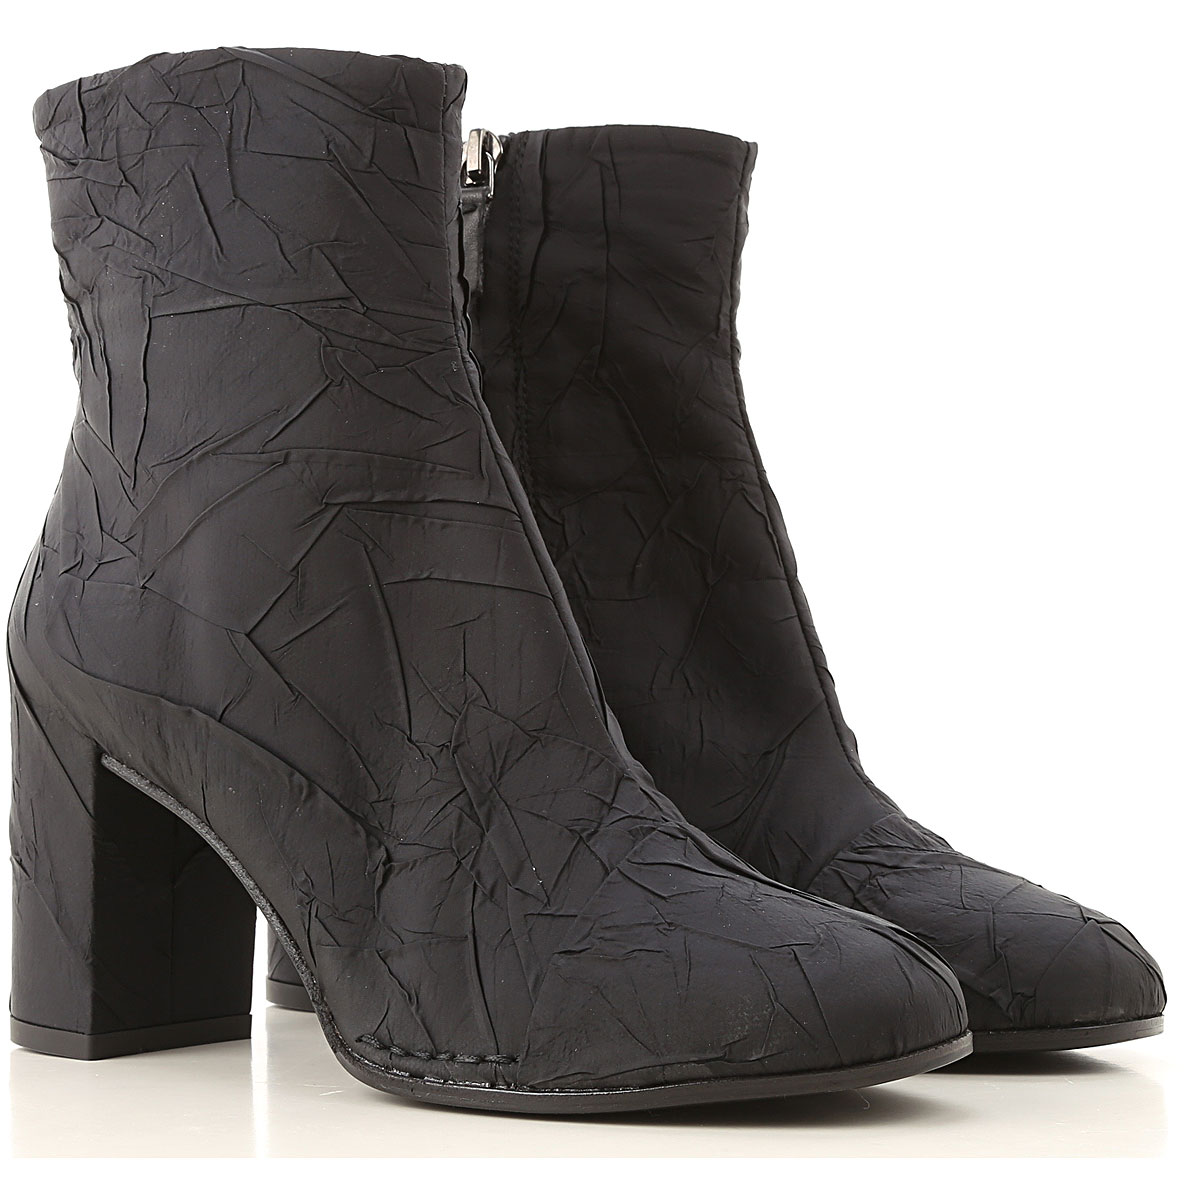 Roberto Del Carlo Boots for Women, Booties On Sale, Black, Fabric, 2019, 6 7 8.5 9